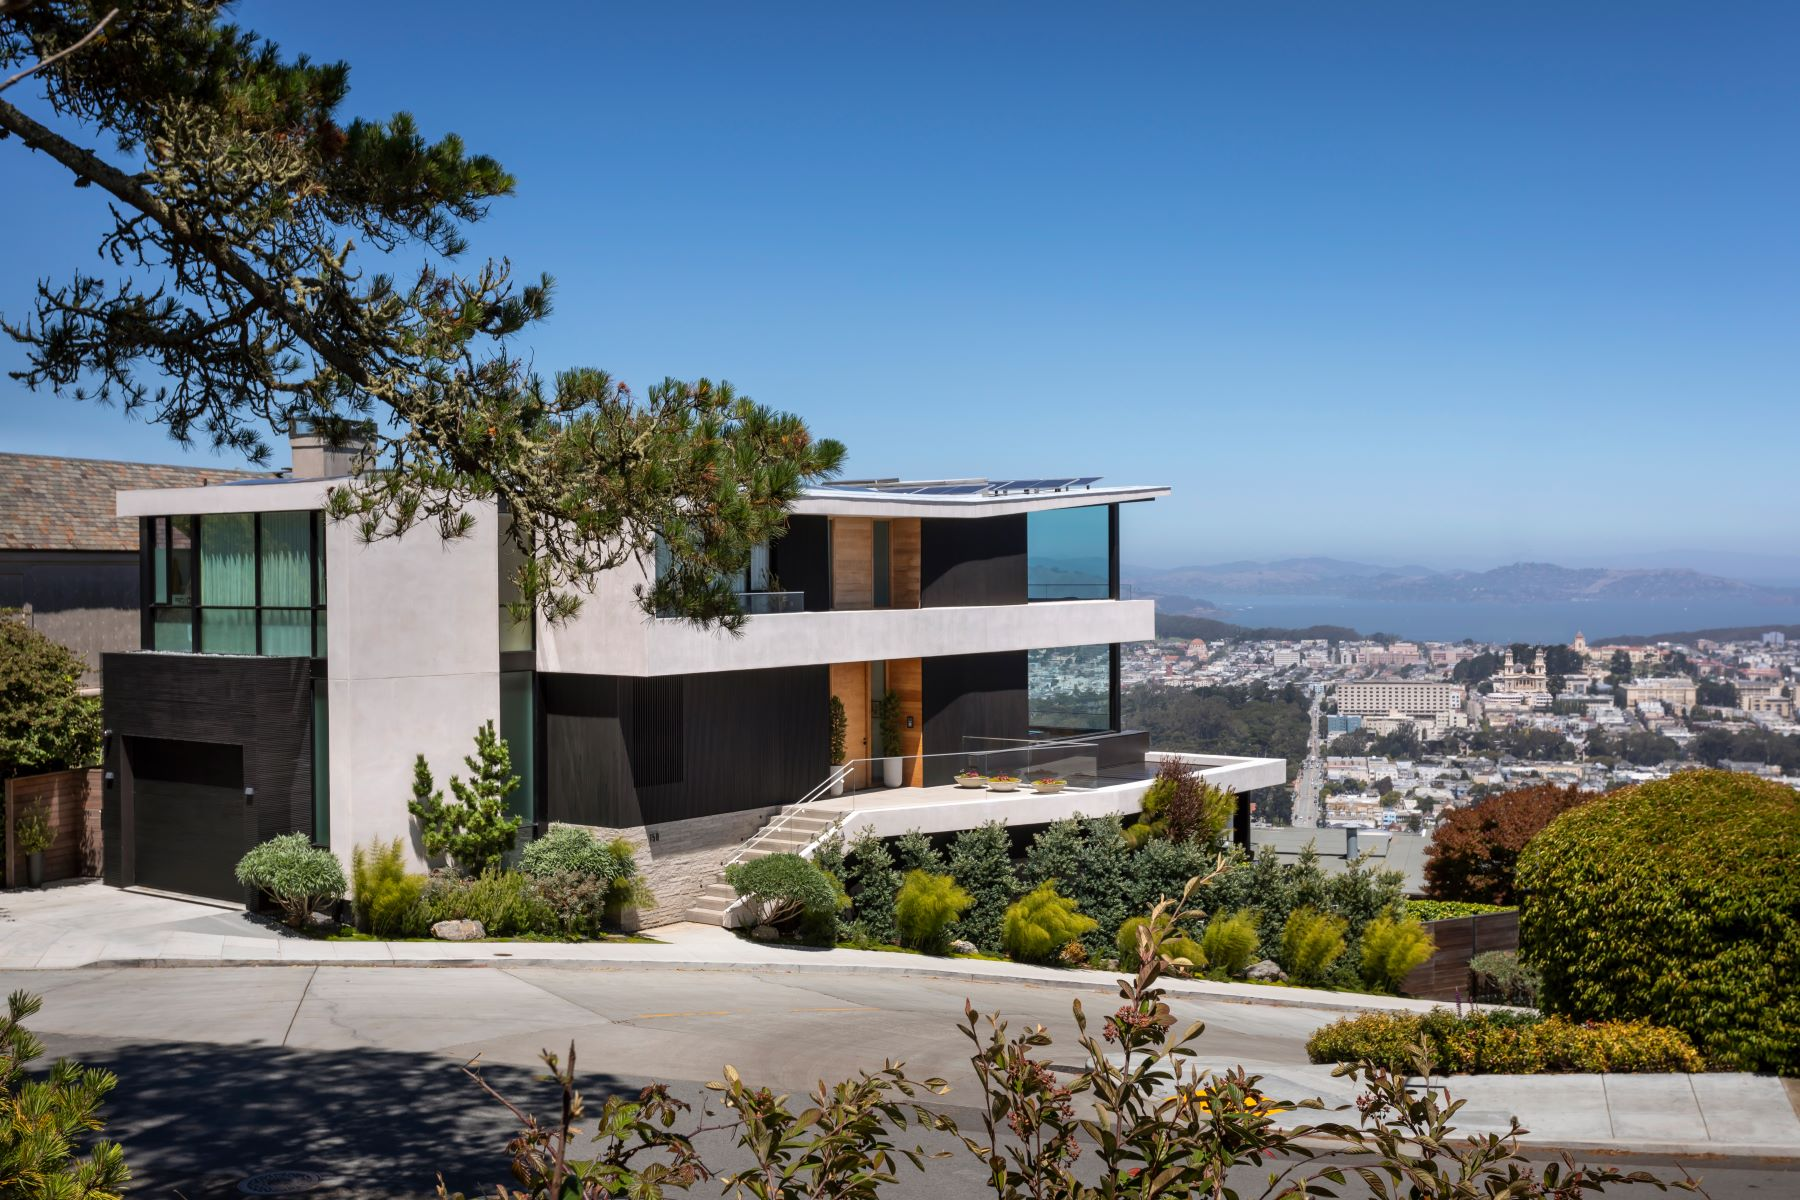 Single Family Homes for Active at Architectural Masterpiece 150 Glenbrook Ave San Francisco, California 94114 United States